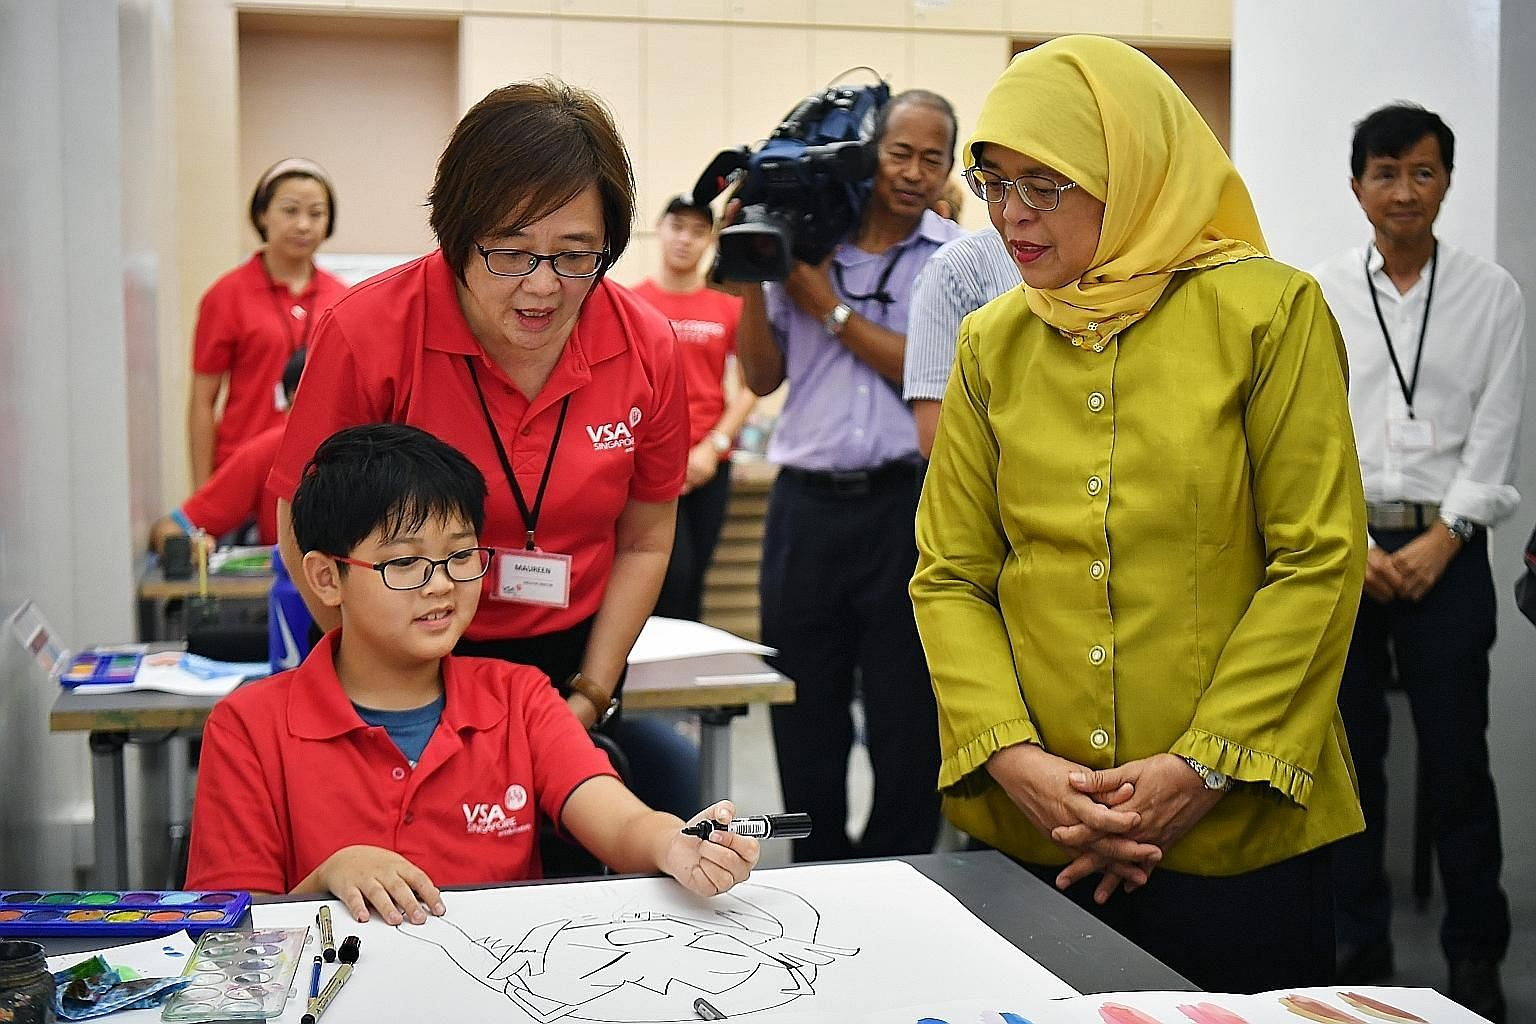 President Halimah Yacob and VSA Singapore executive director Maureen Goh observing student Royce Tai, 13, working on his drawing in VSA Artspace @ Bedok yesterday. Her visit was part of the President's Challenge outreach efforts to help vulnerable gr